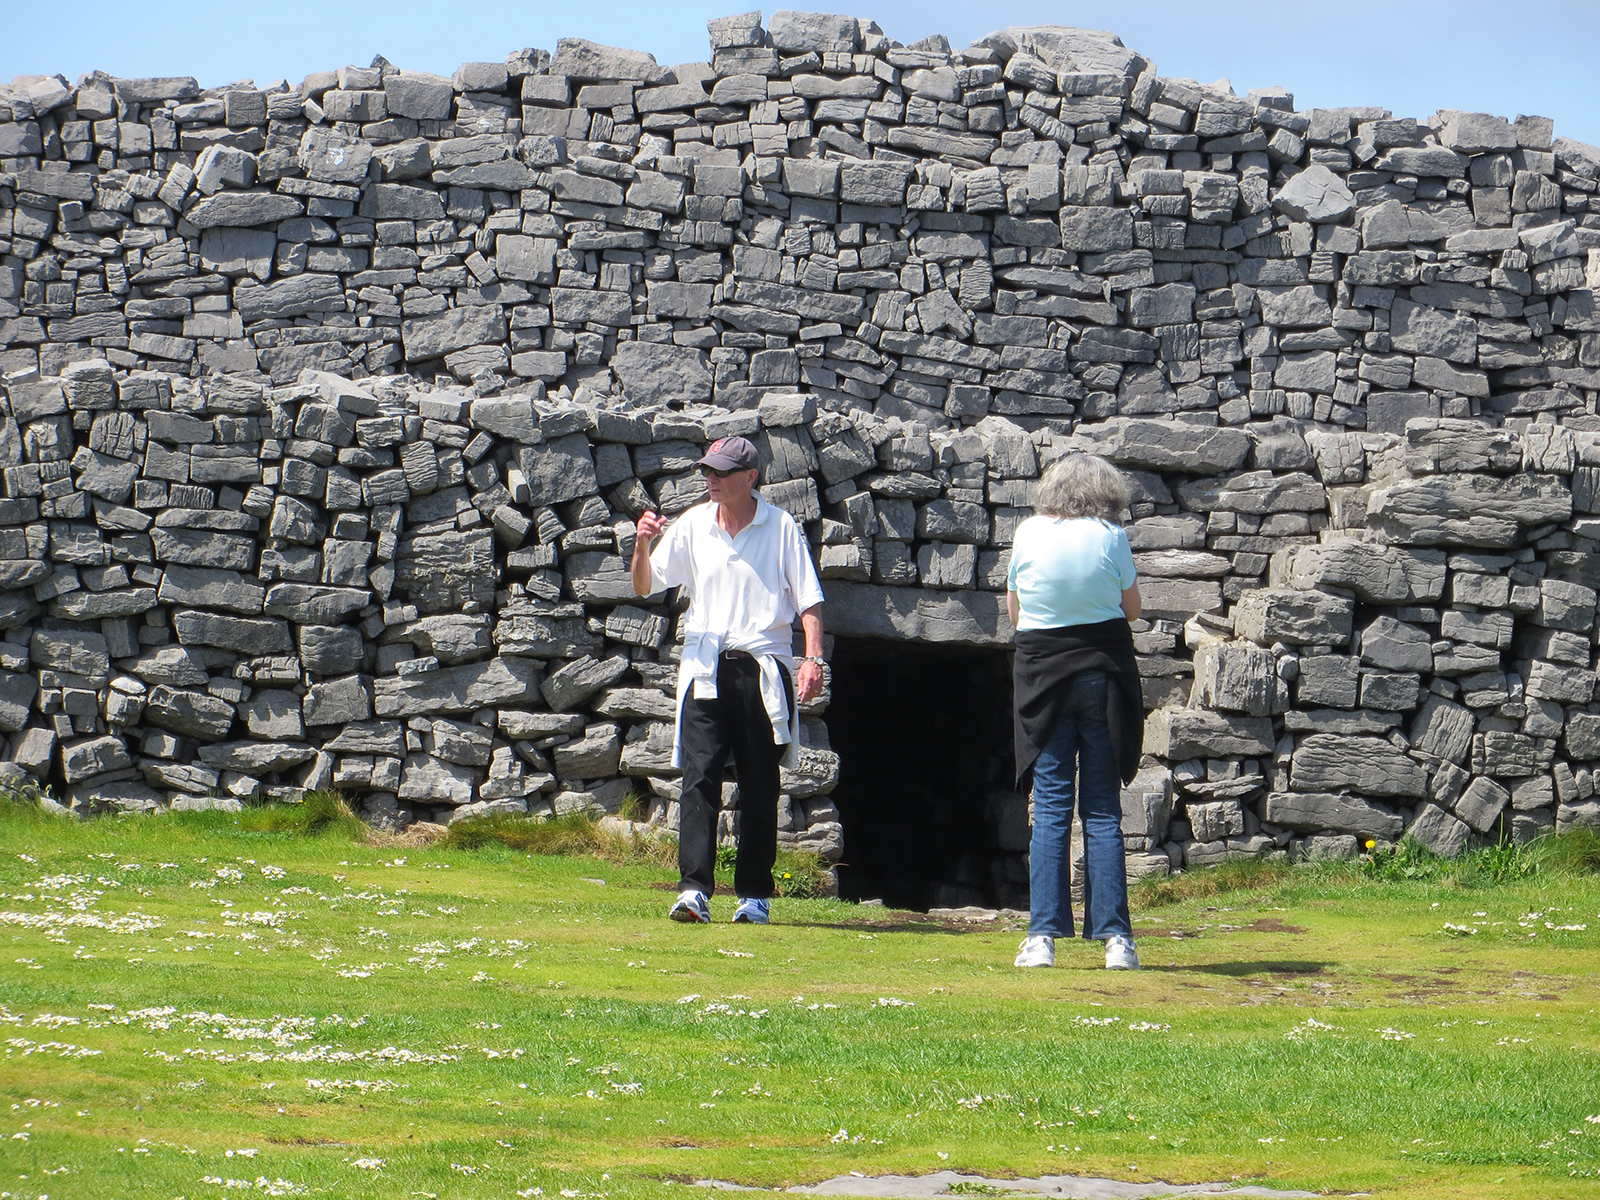 Ireland classifies its dry stone buildings as Intangible Cultural Heritage